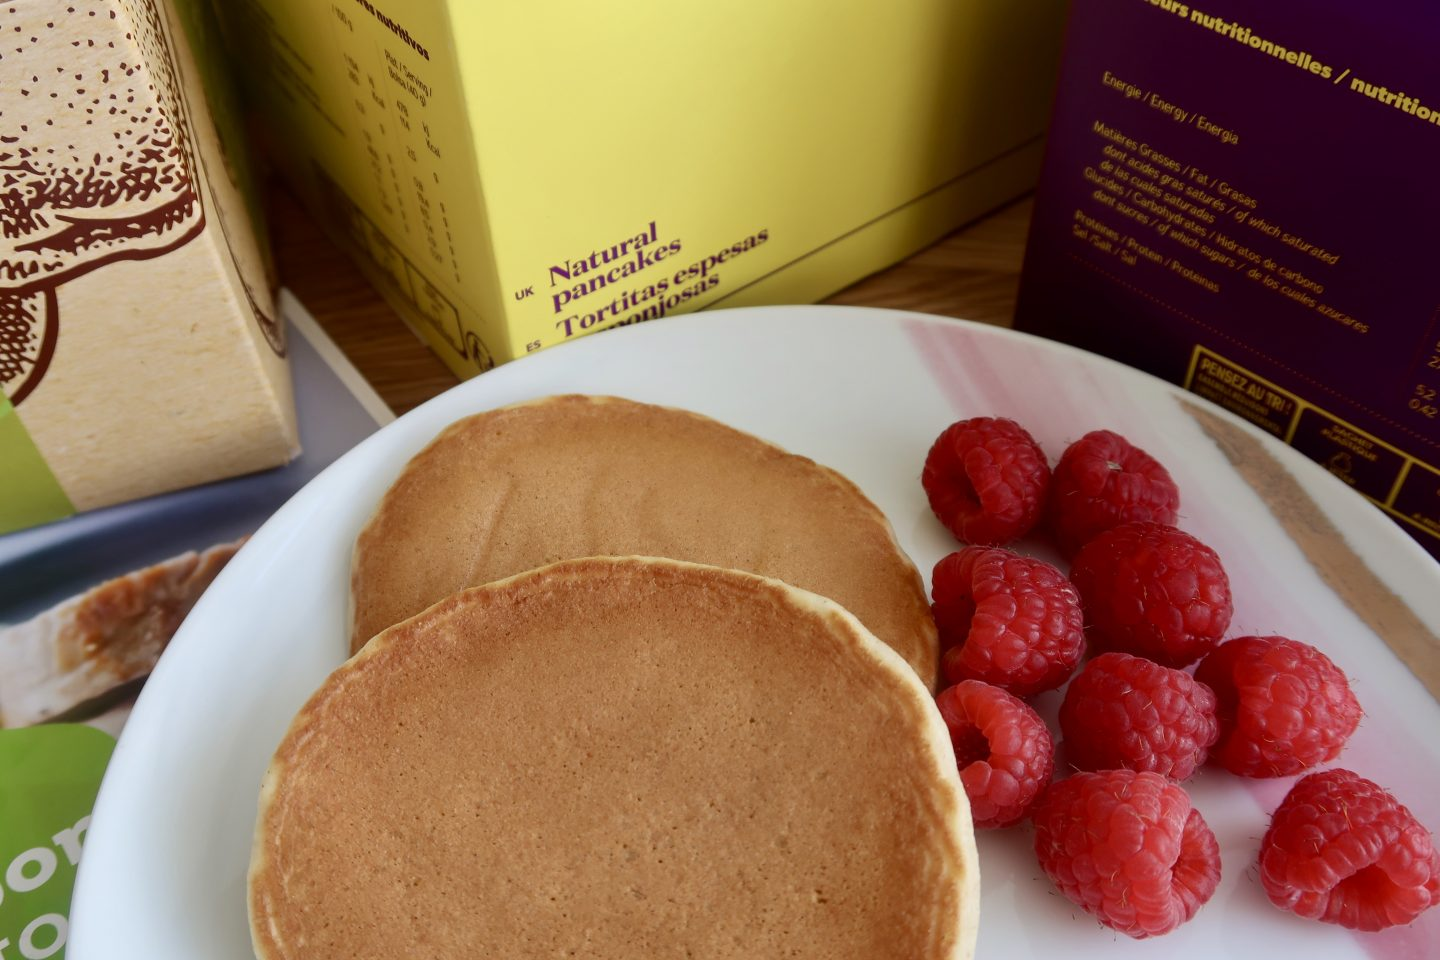 A white plate with 2 pancakes and some raspberries